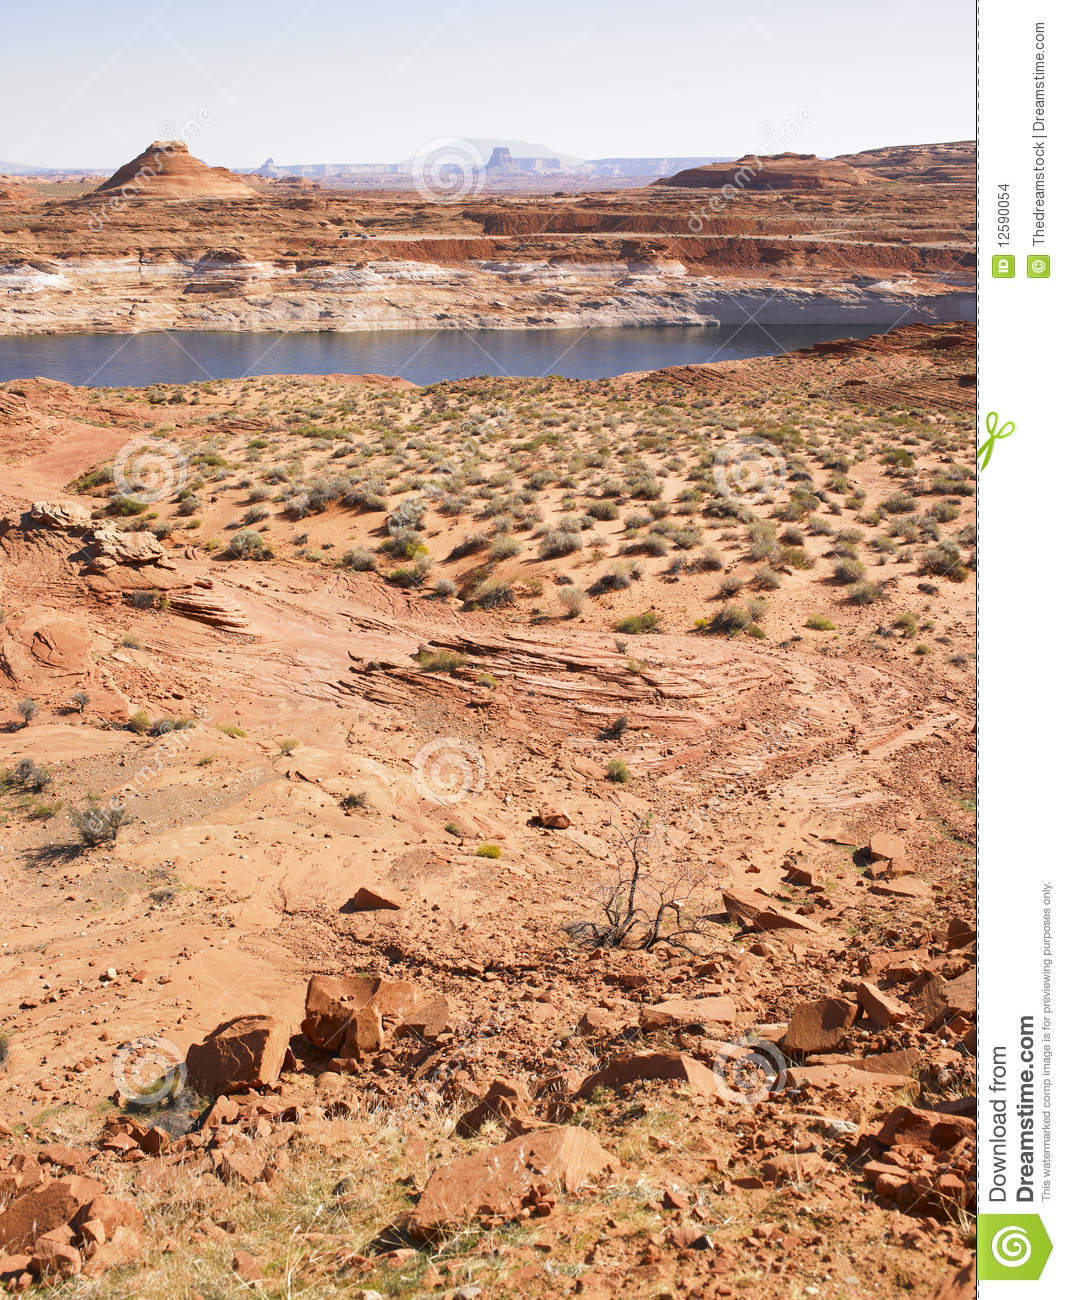 Desert Landscaping With River Rock : Desert landscape with river in background stock images